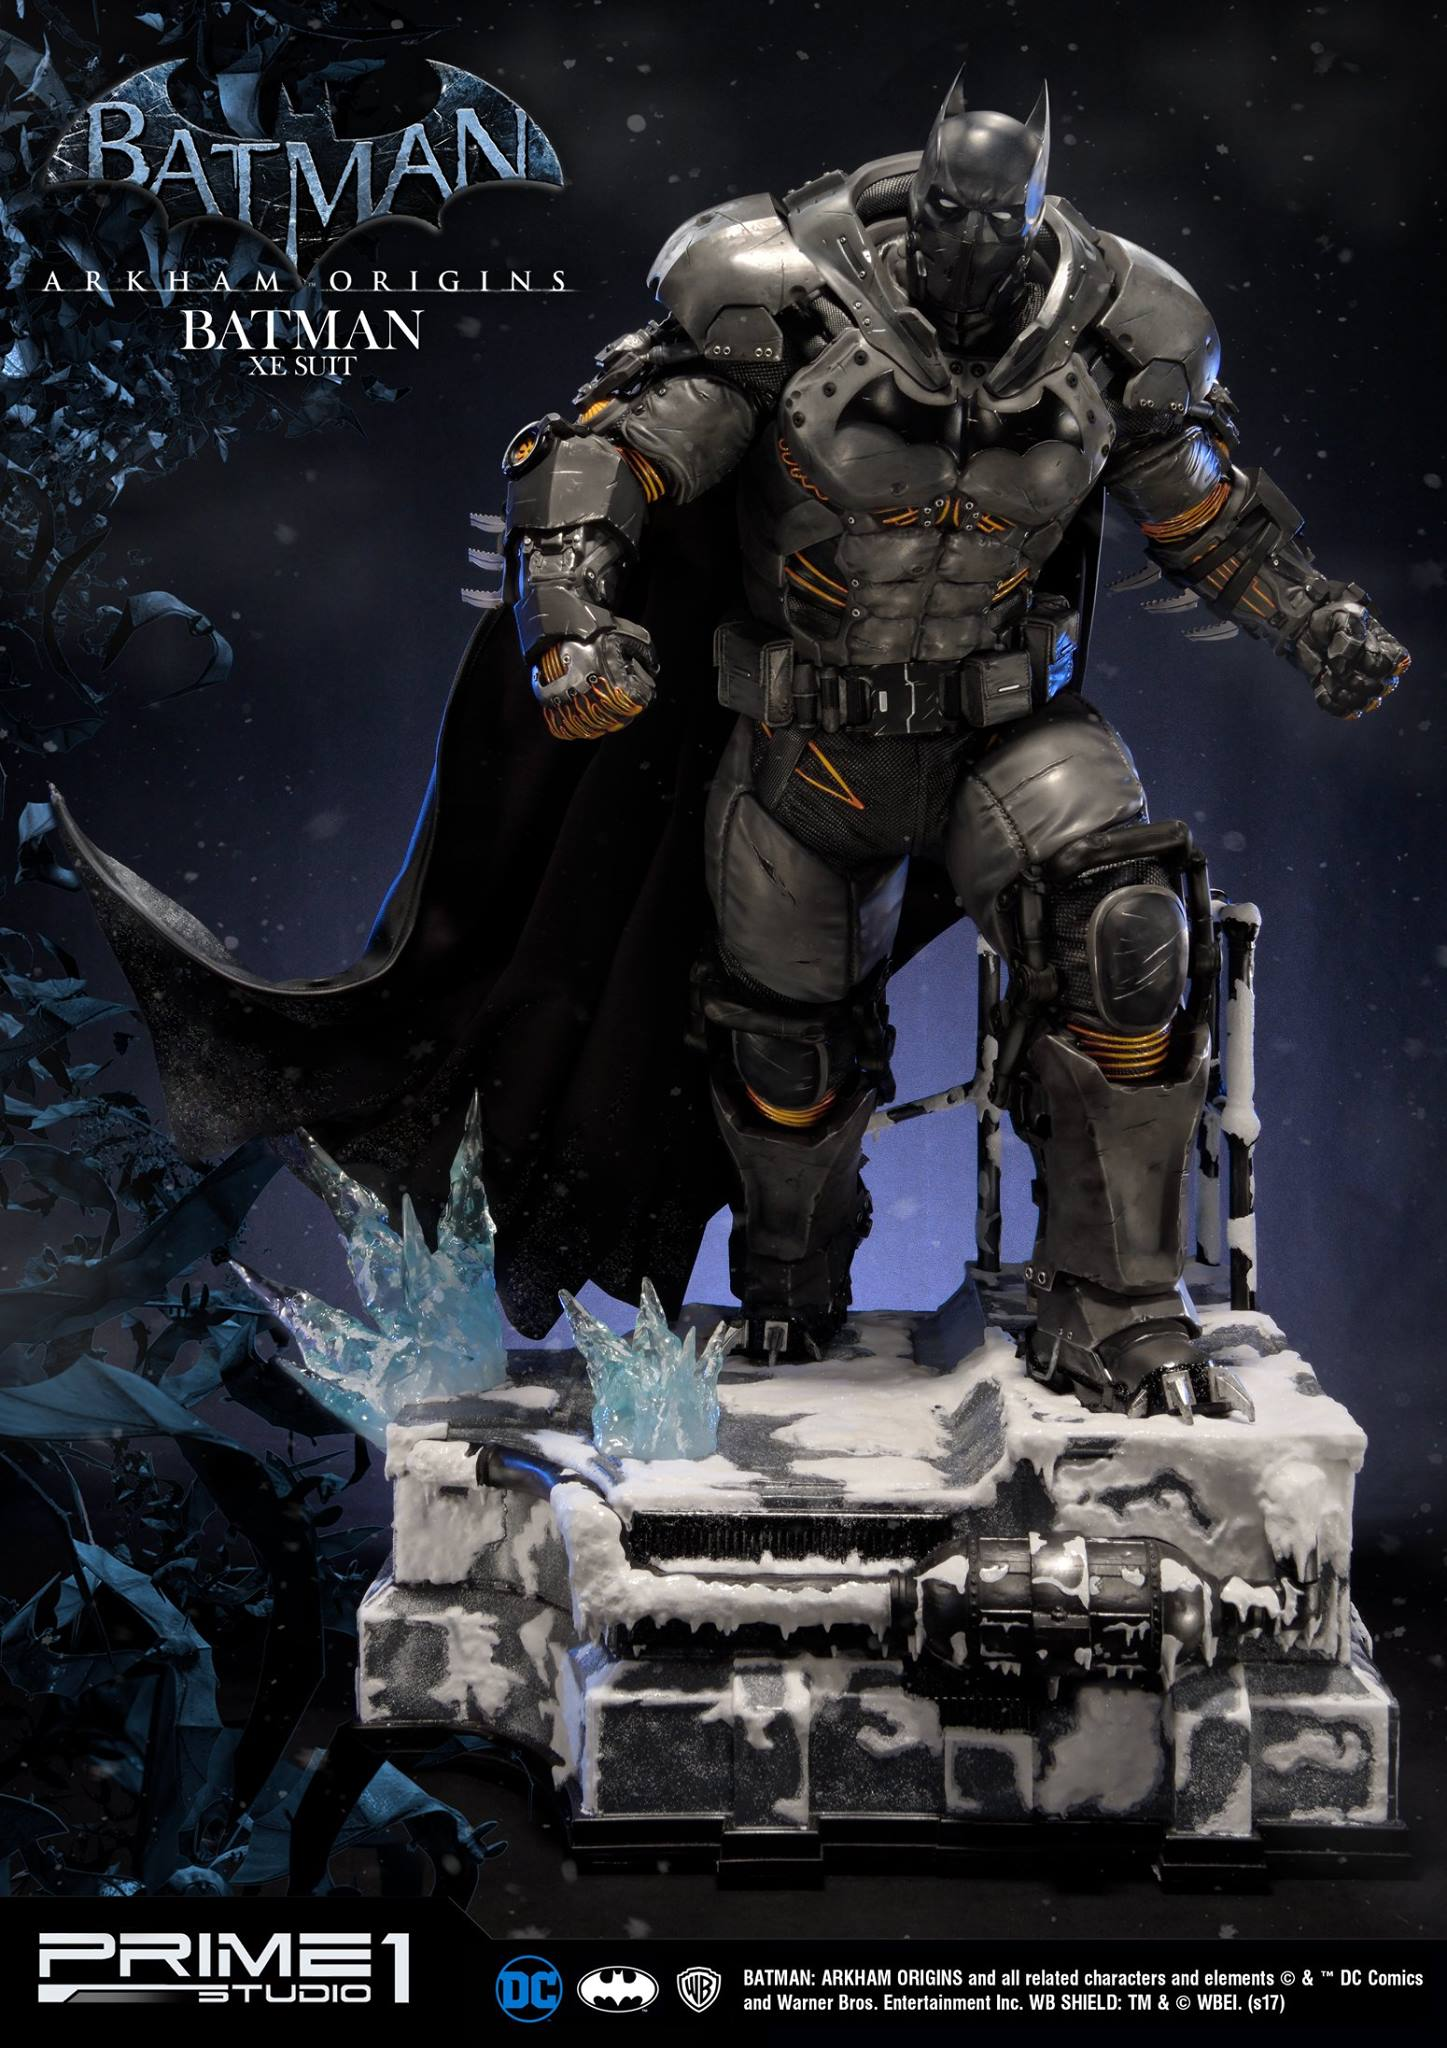 how to get cold cold heart on batman arkham origins